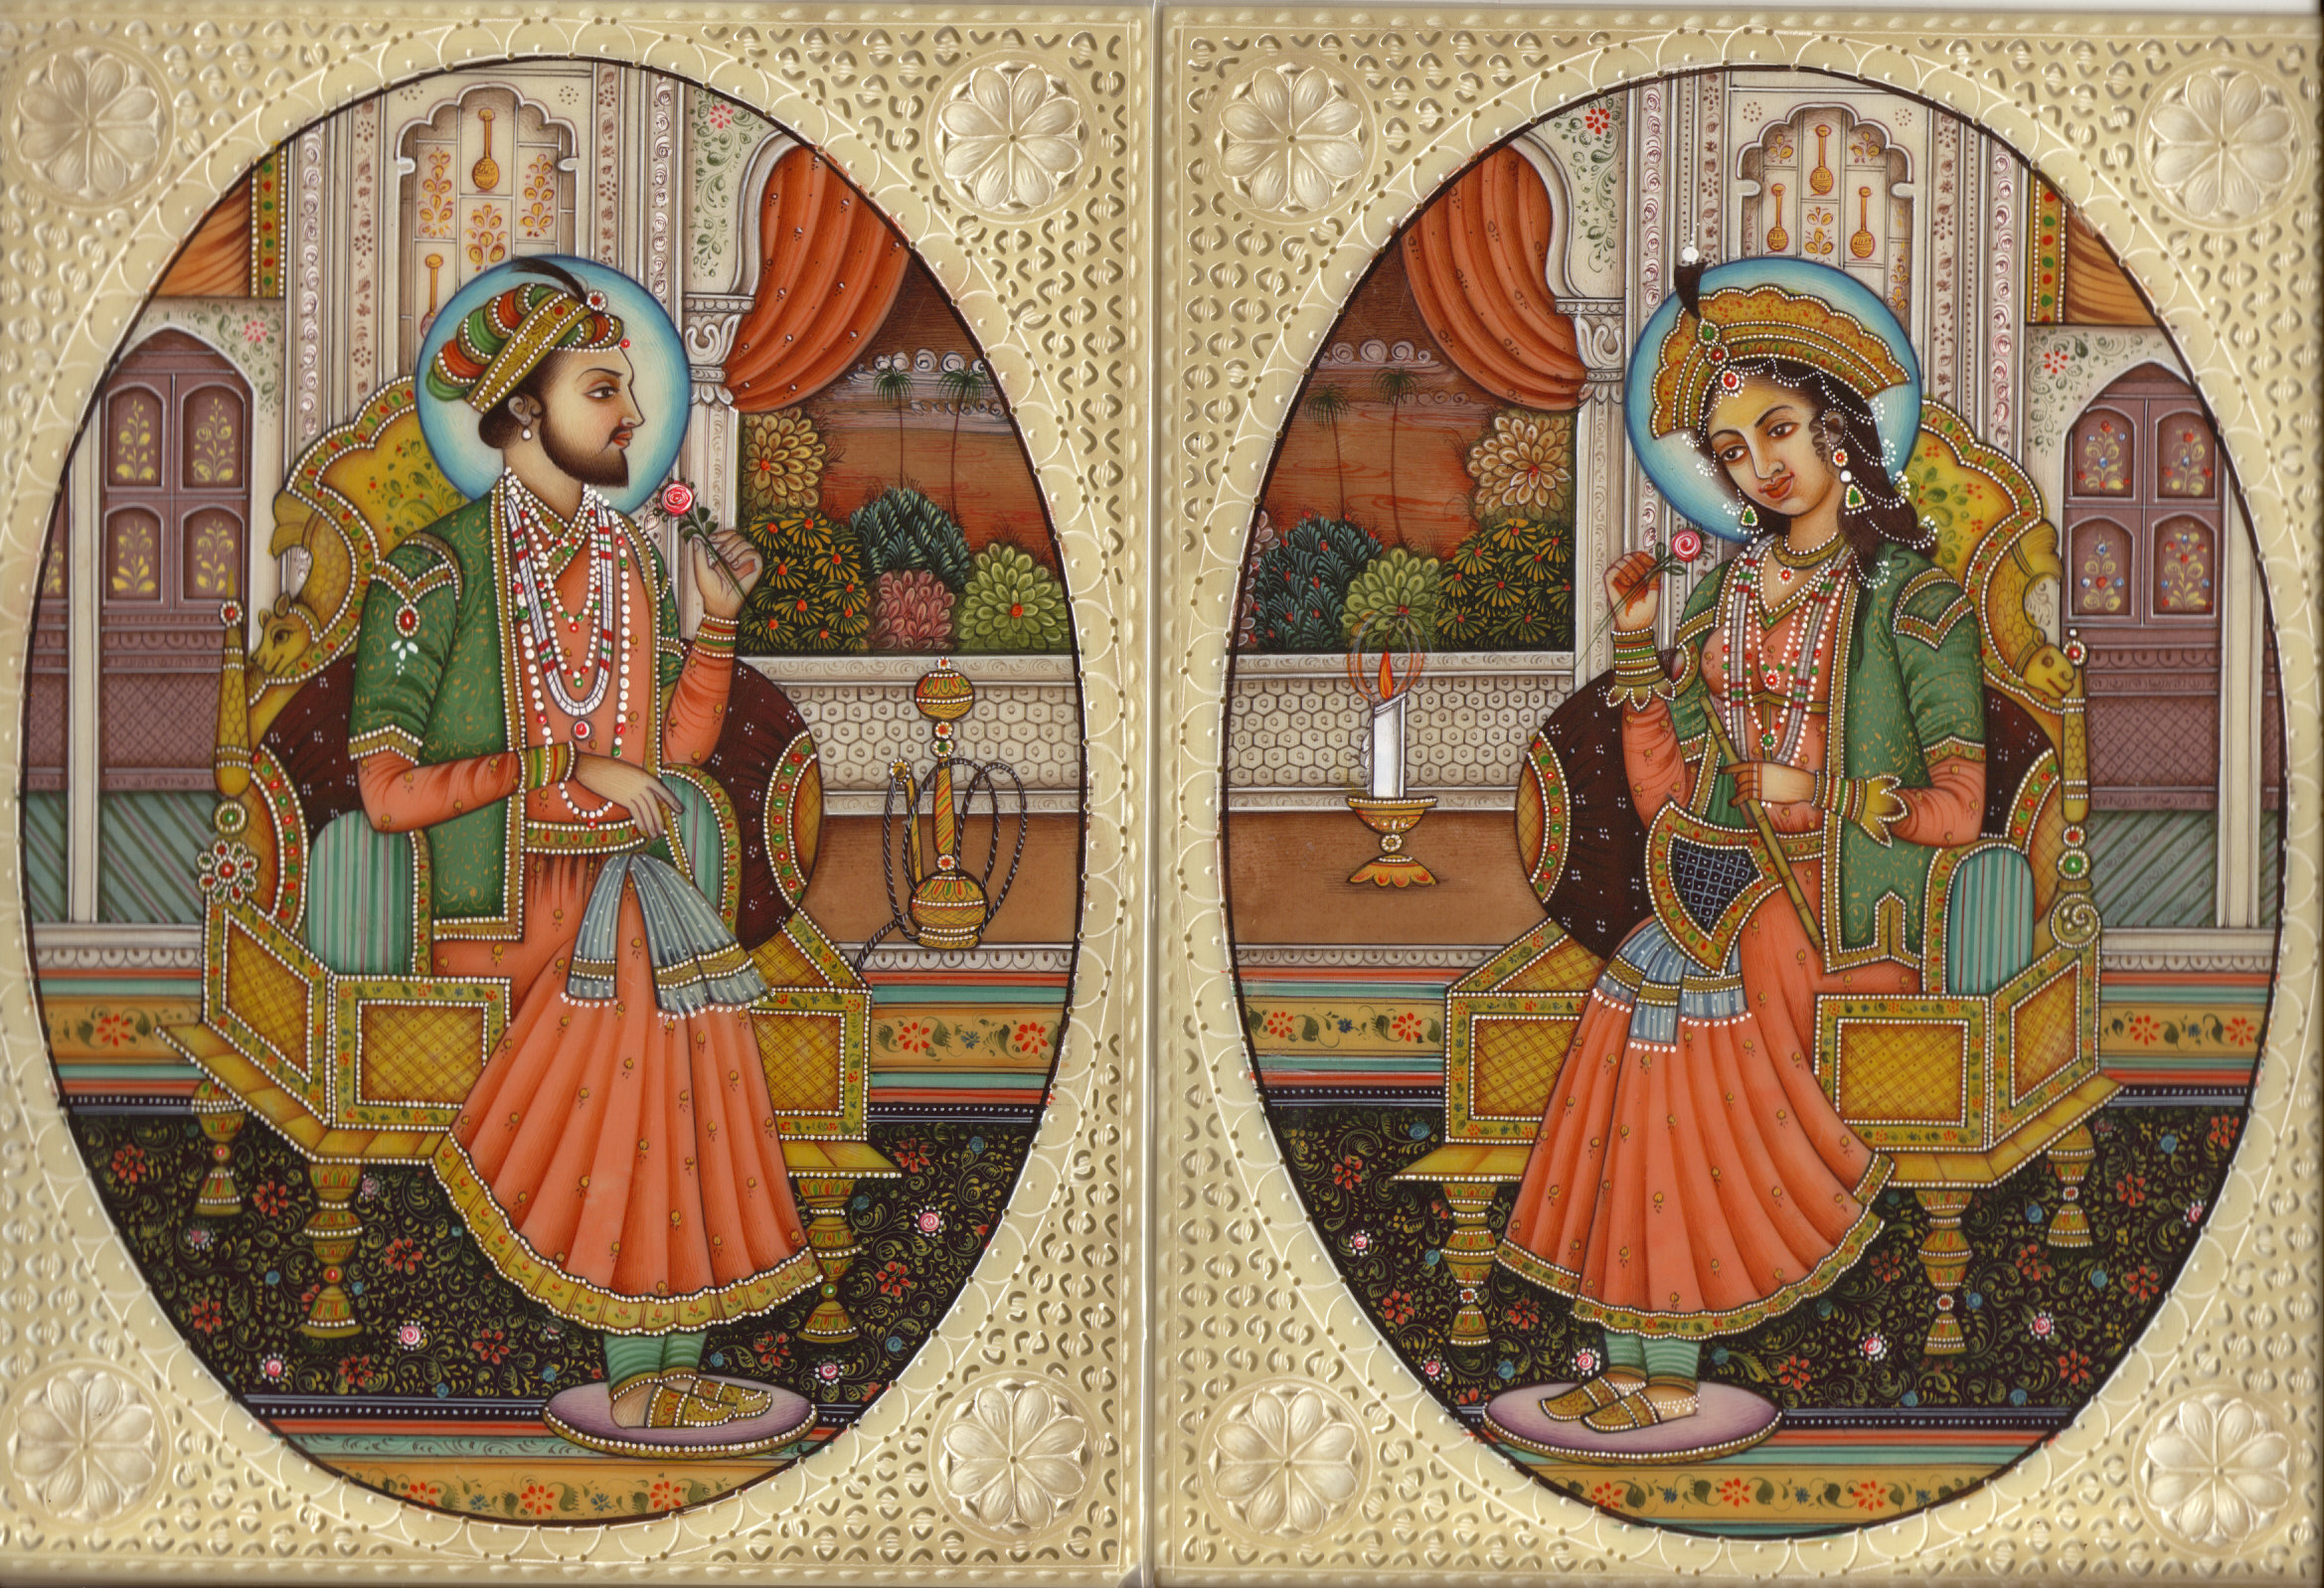 Stories of Shah Jahan's elite love for his wife Mumtaz are concoctions